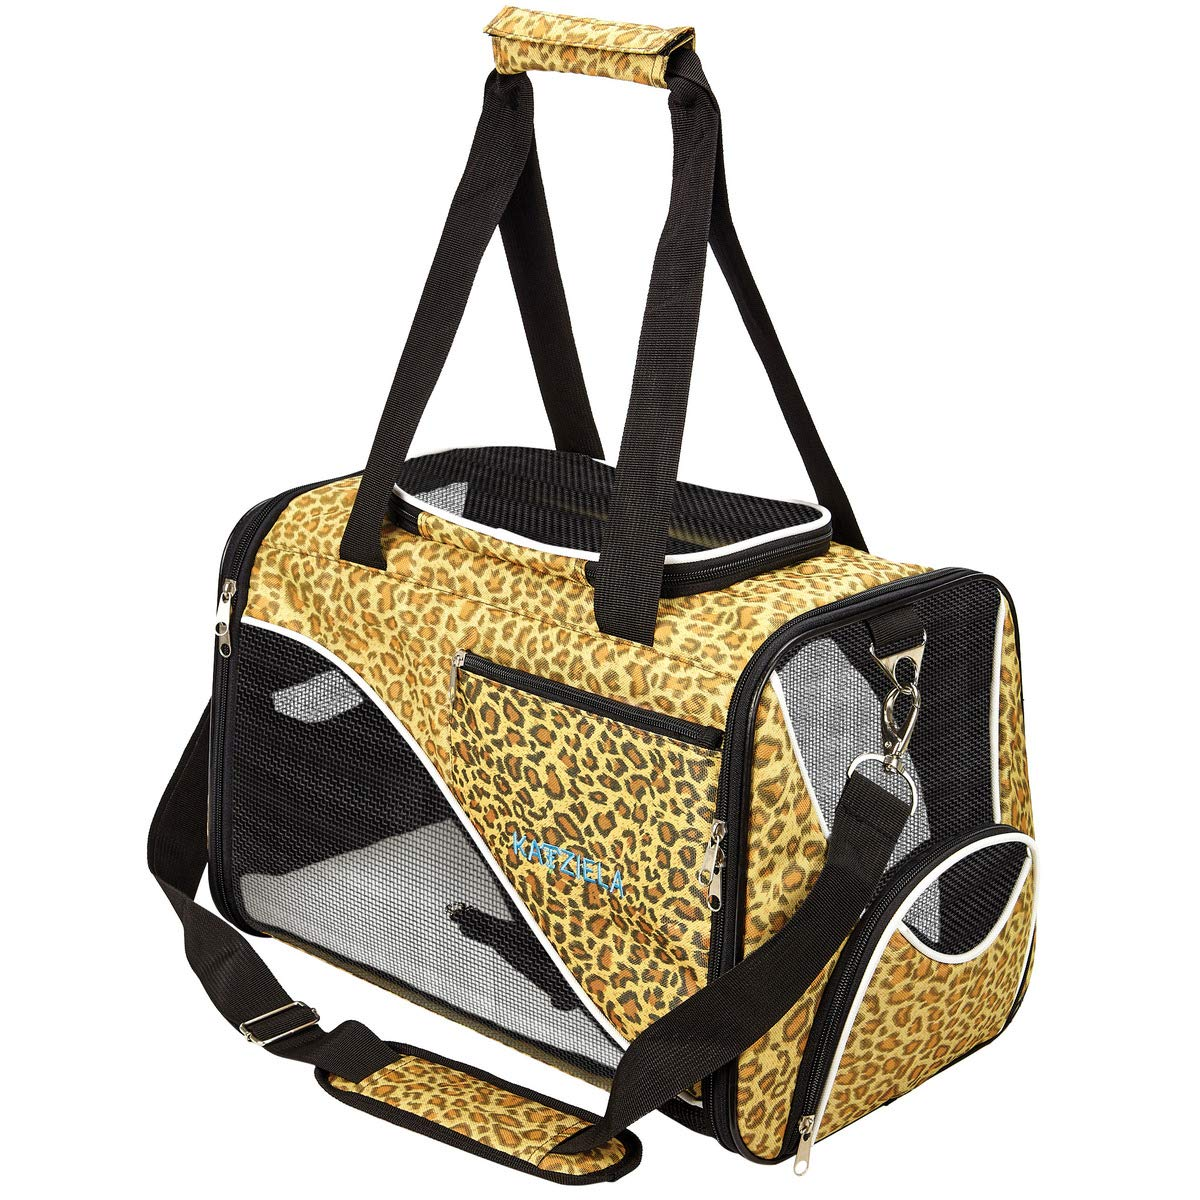 Leopard Print Katziela Pet Carrier Soft Sided, Airline Approved Carrying Bag Small Dogs Cats, Front, Side Top Mesh Ventilation Windows, Storage Pocket Safety Leash Hook Leopard Print